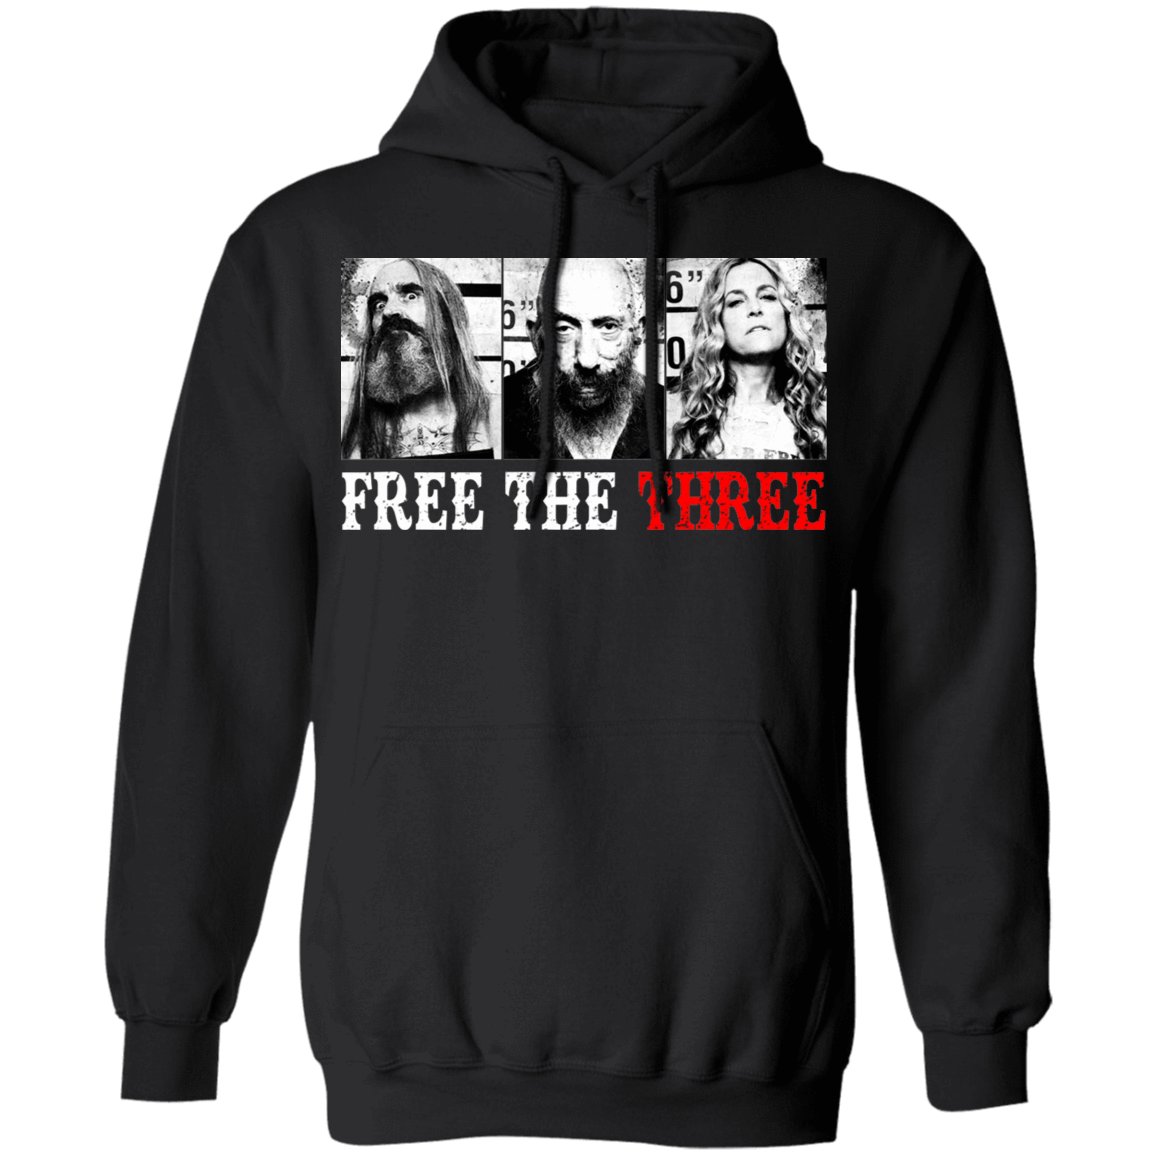 Rob Zombie Free The Three T-Shirts, Hoodies, Tank 541-4740-80780091-23087 - Tee Ript